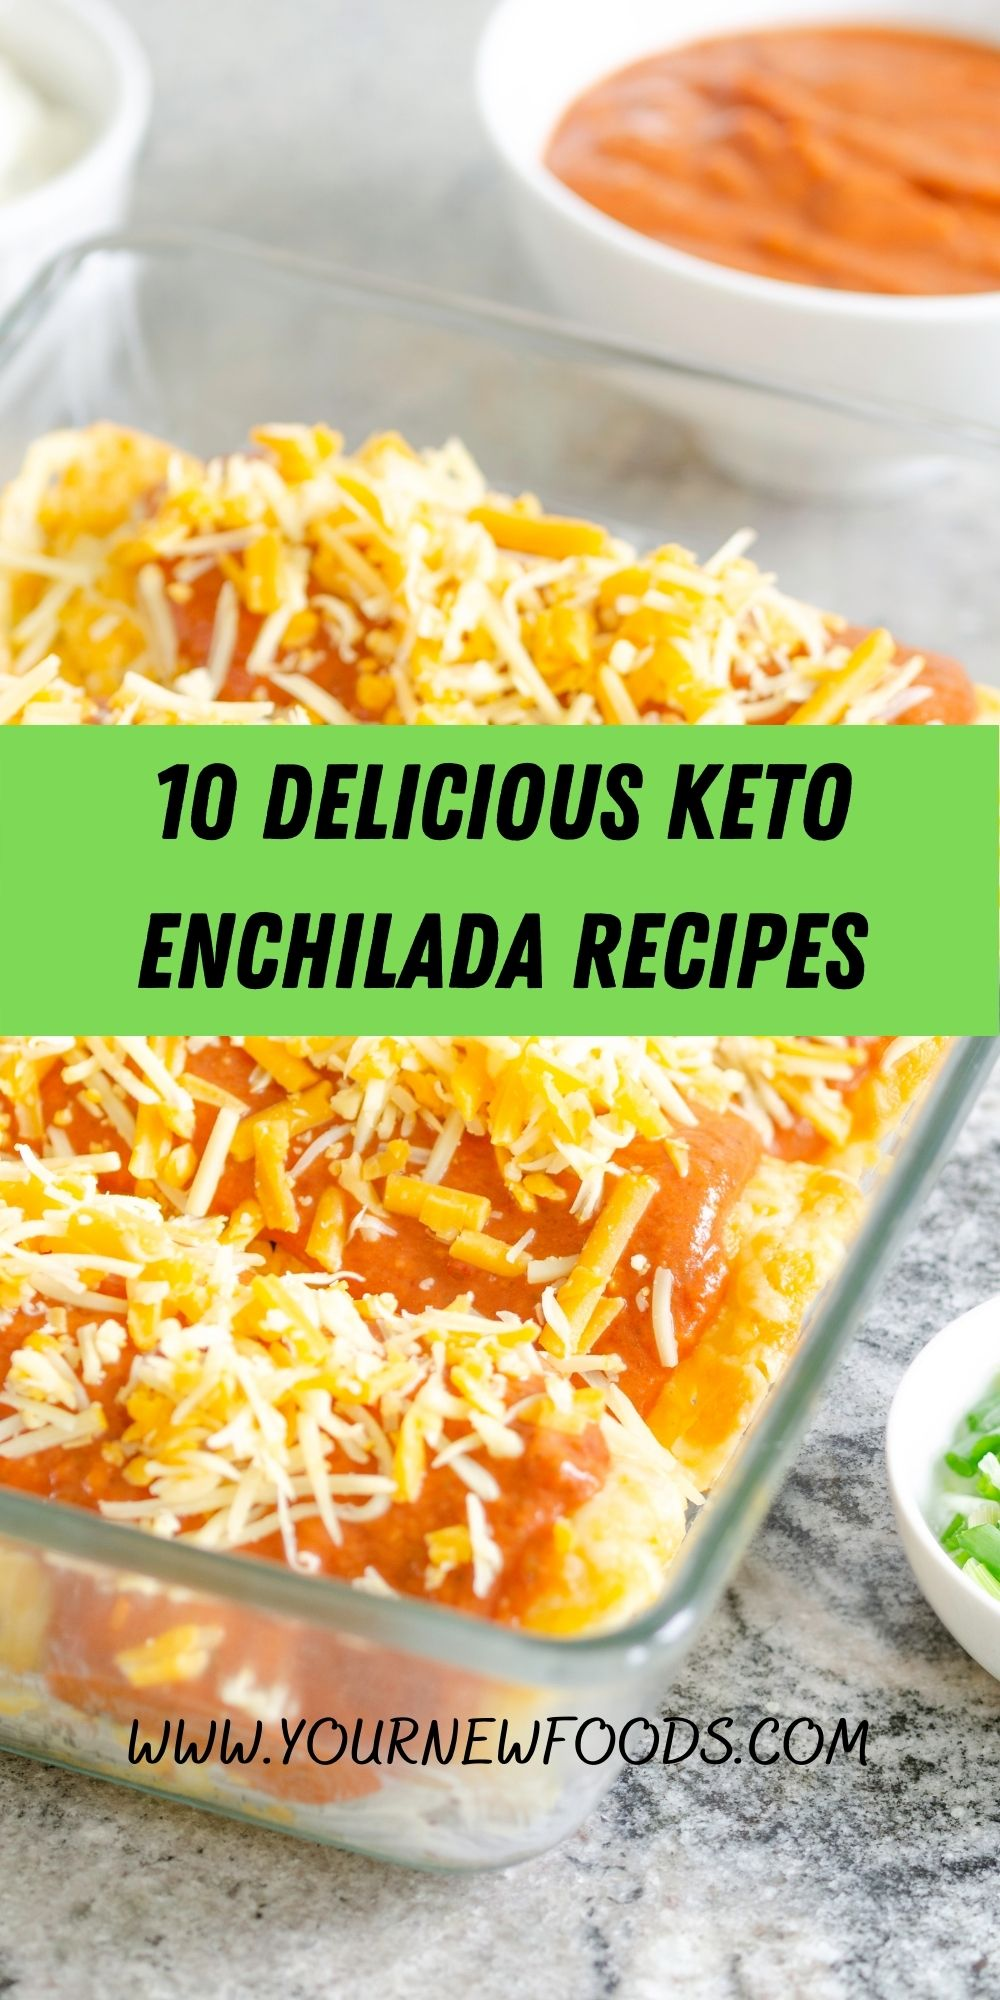 keto enchilada in a glass bowl with grated cheese on top